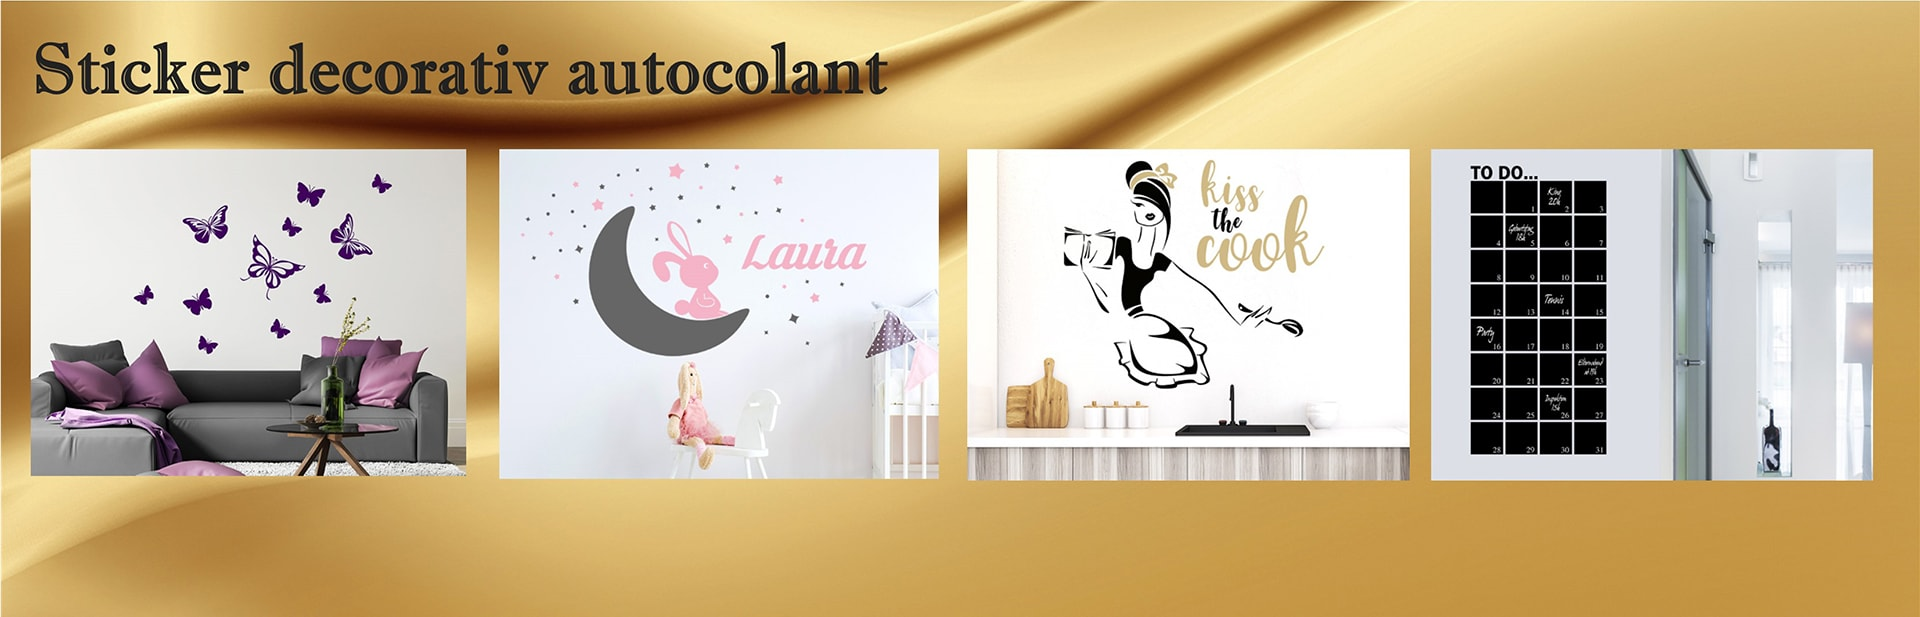 Sticker decoratiuni autocolant